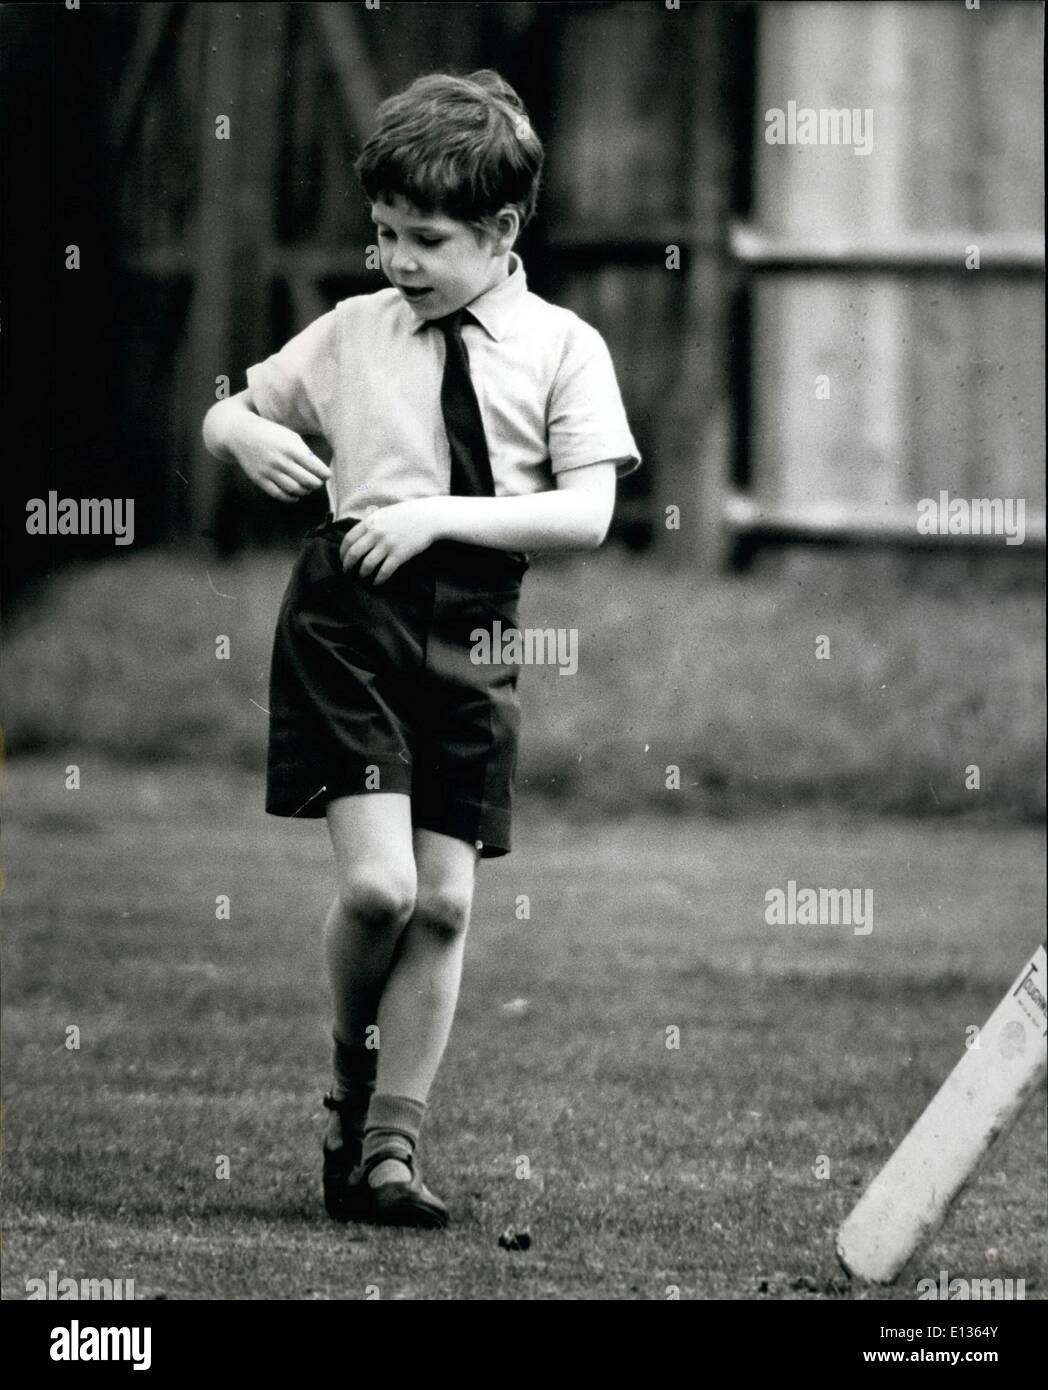 Feb. 28, 2012 - Totally unaware of the photographer catching him 7 years old Viscount Linley gets bored during a game of cricket with some of his classmates. Son of Princess Margaret and Earl of Sweden. - Stock Image